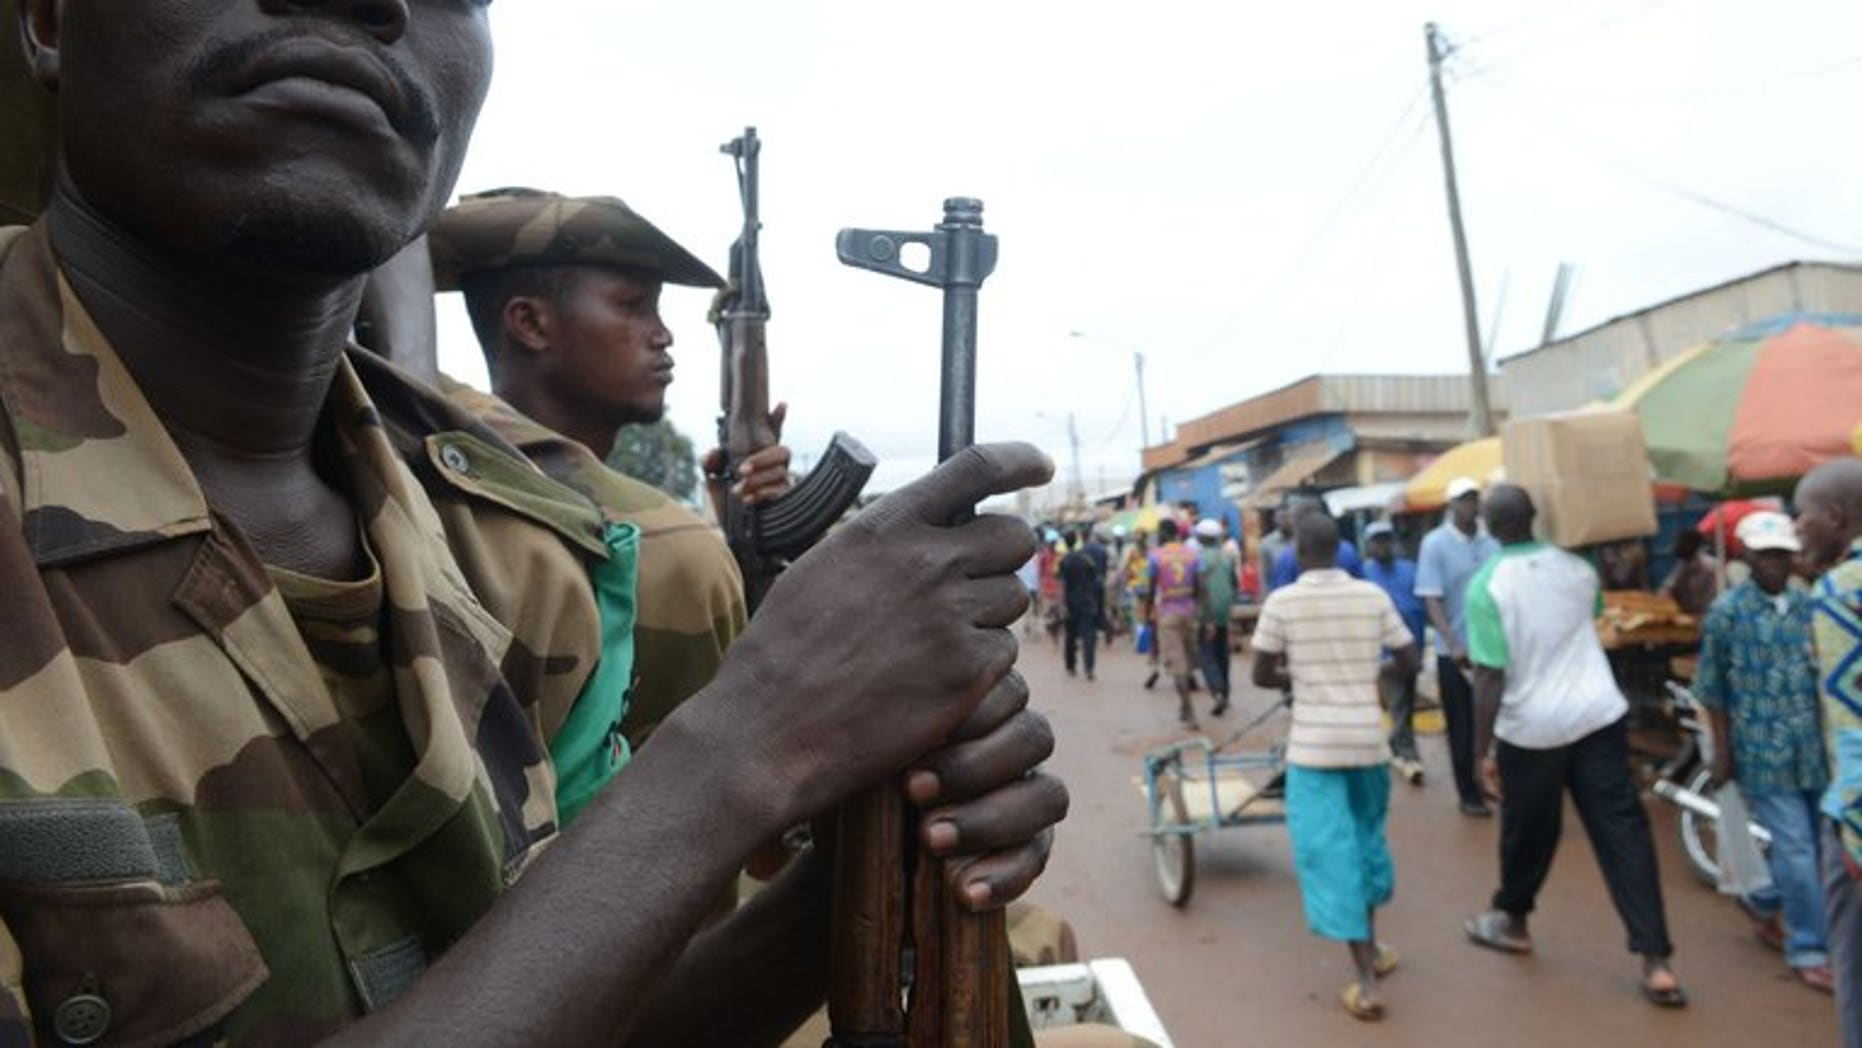 Members of the Multinational Force of Central Africa patrol on July 20, 2013 in Bangui. The United Nations will turn its attention this week to the violent near-collapse of the Central African Republic, with France leading efforts to restore order and peace to its former colony.